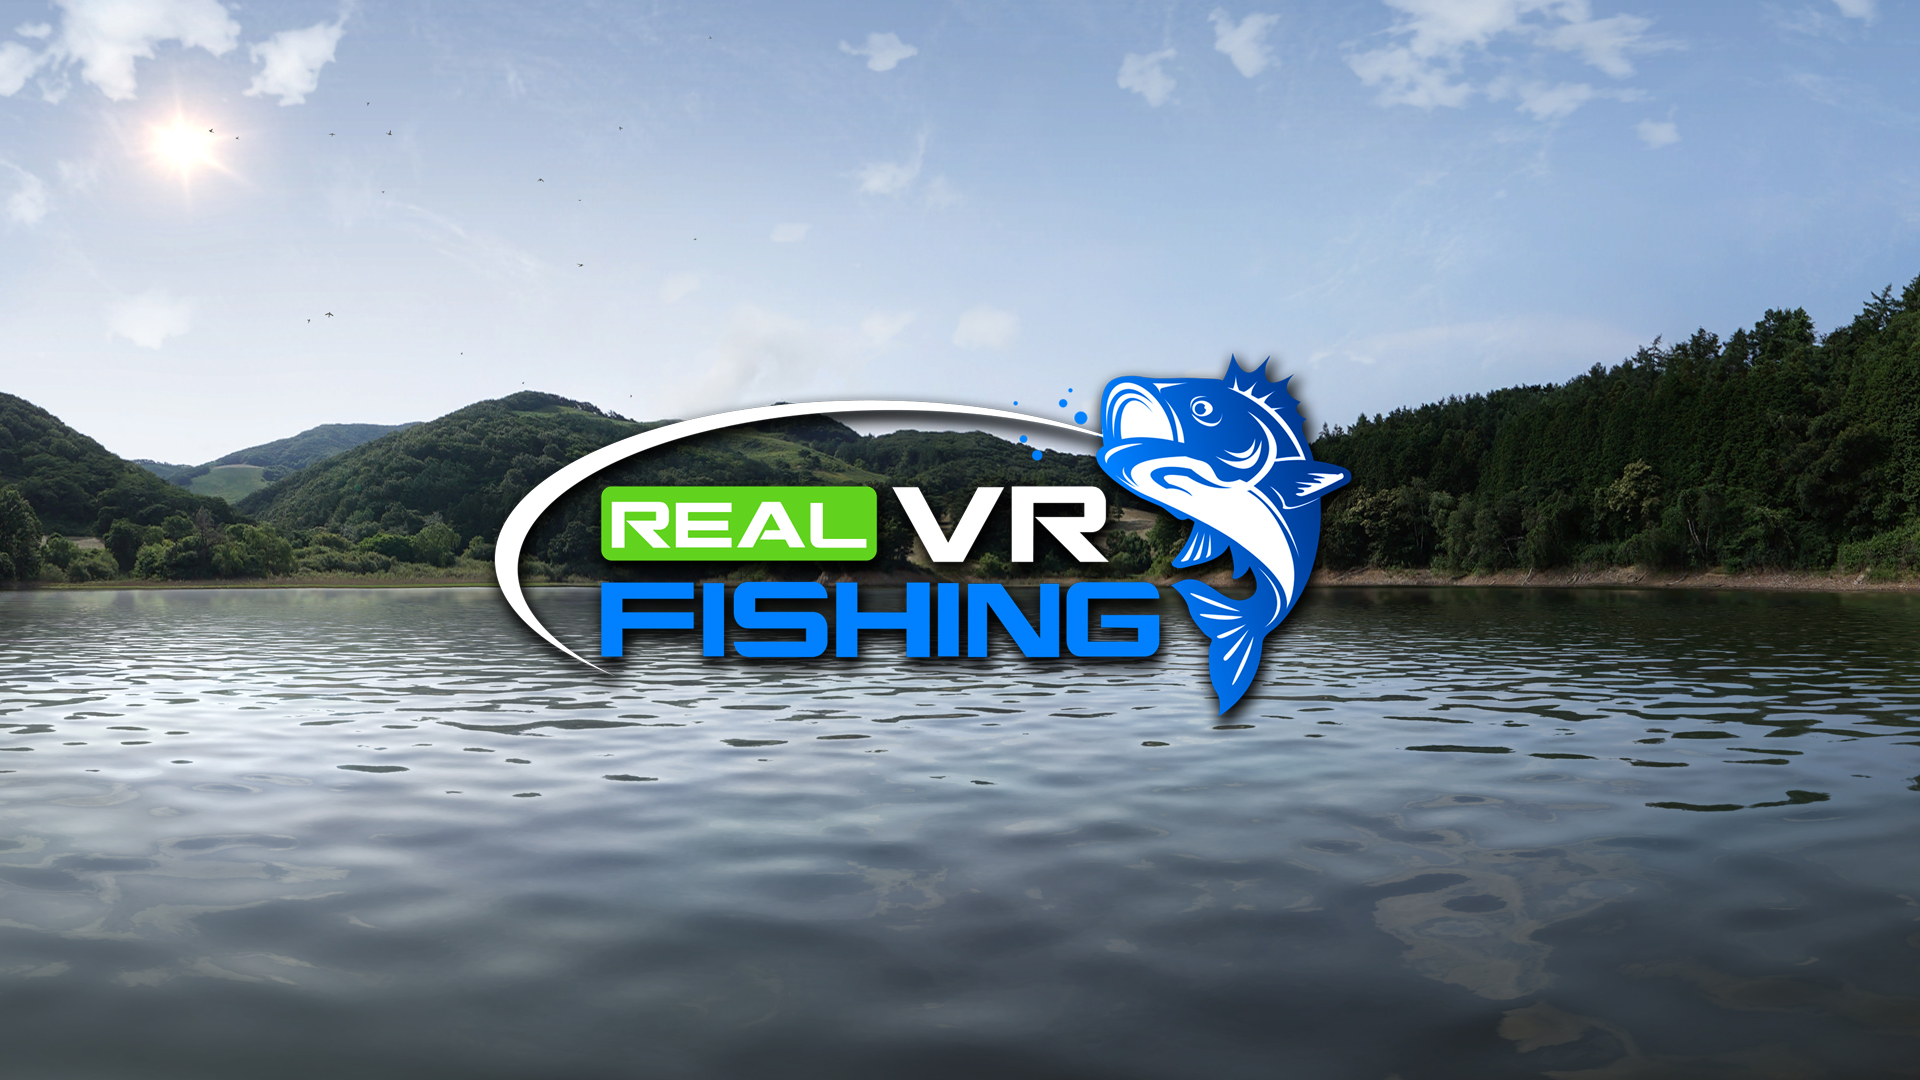 Real VR Fishing